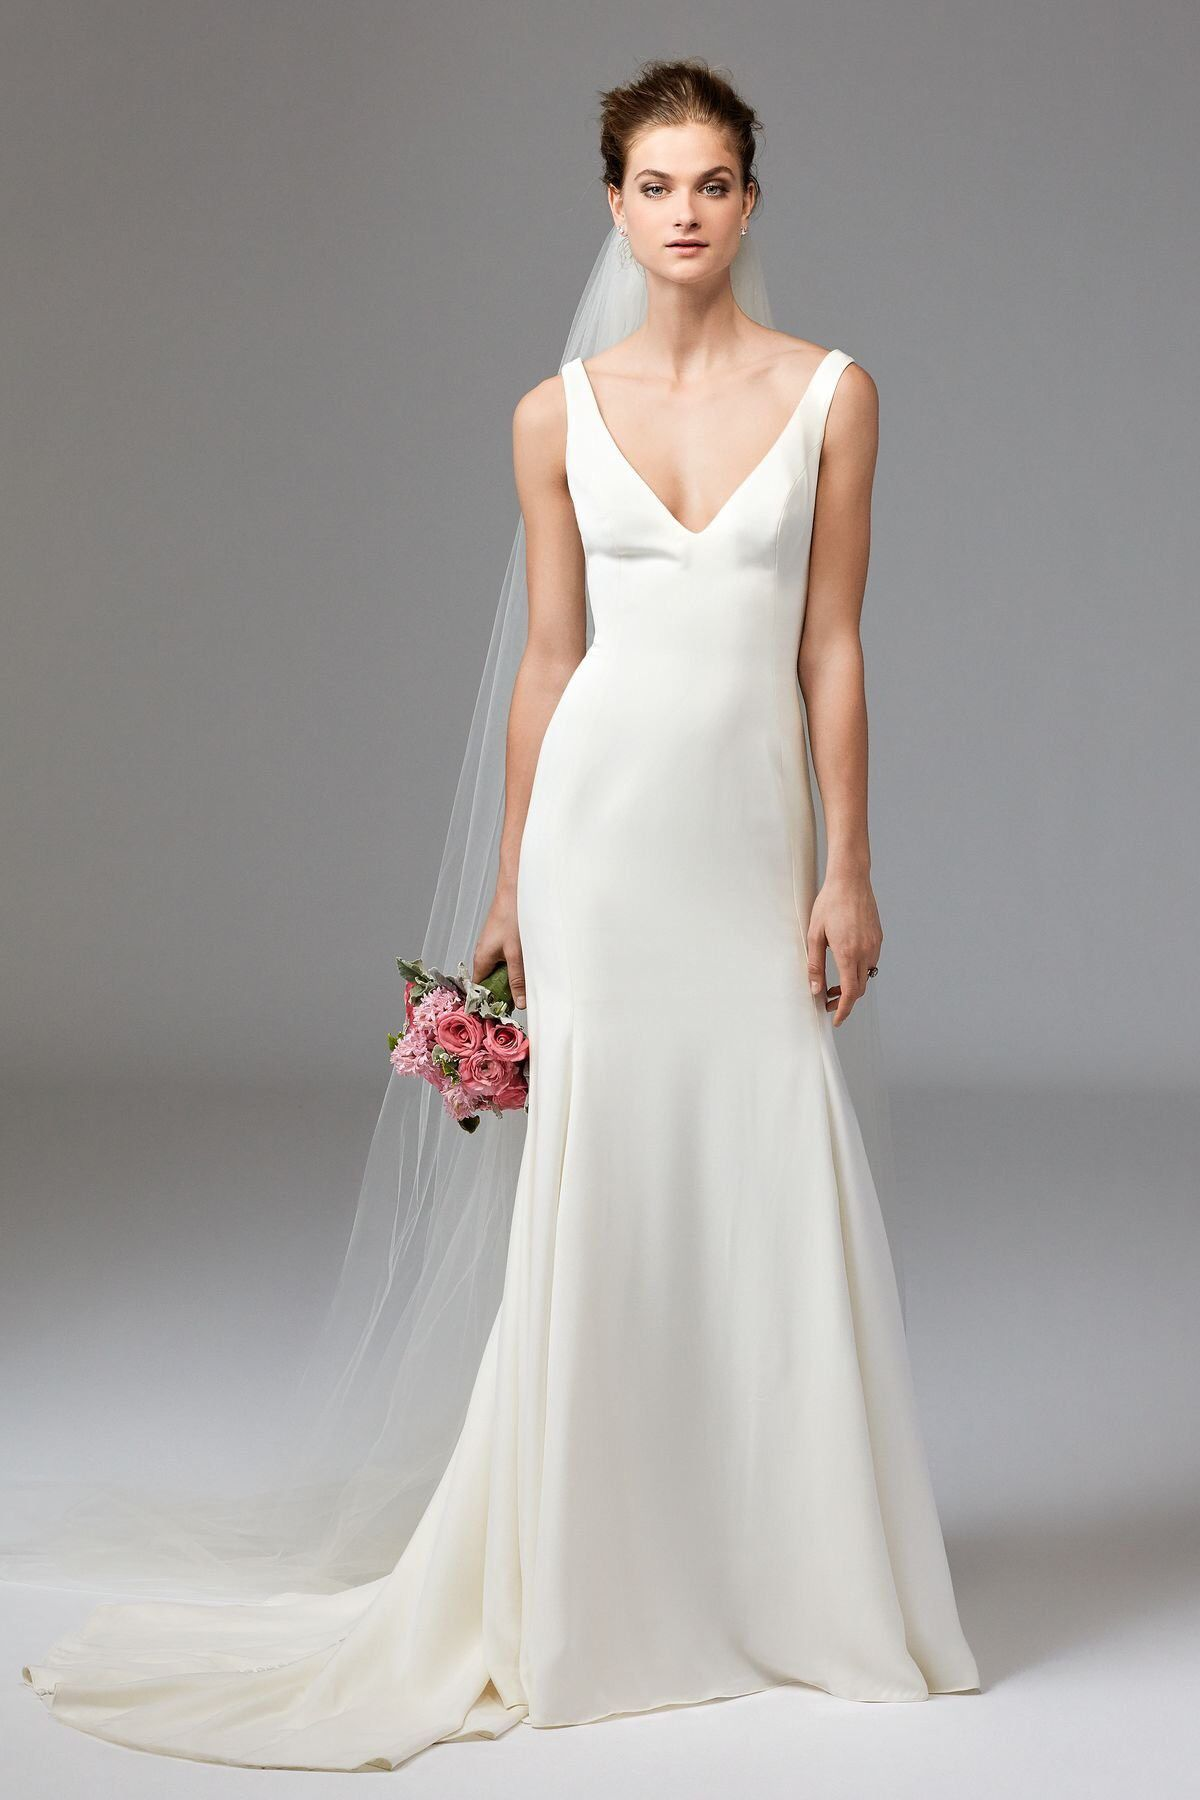 Leona Silk Georgette Plain Wedding Dress By Watters Available At Devlin Bridal Couture We Stock A Wonderful Selection Of Designer Dresses And Run